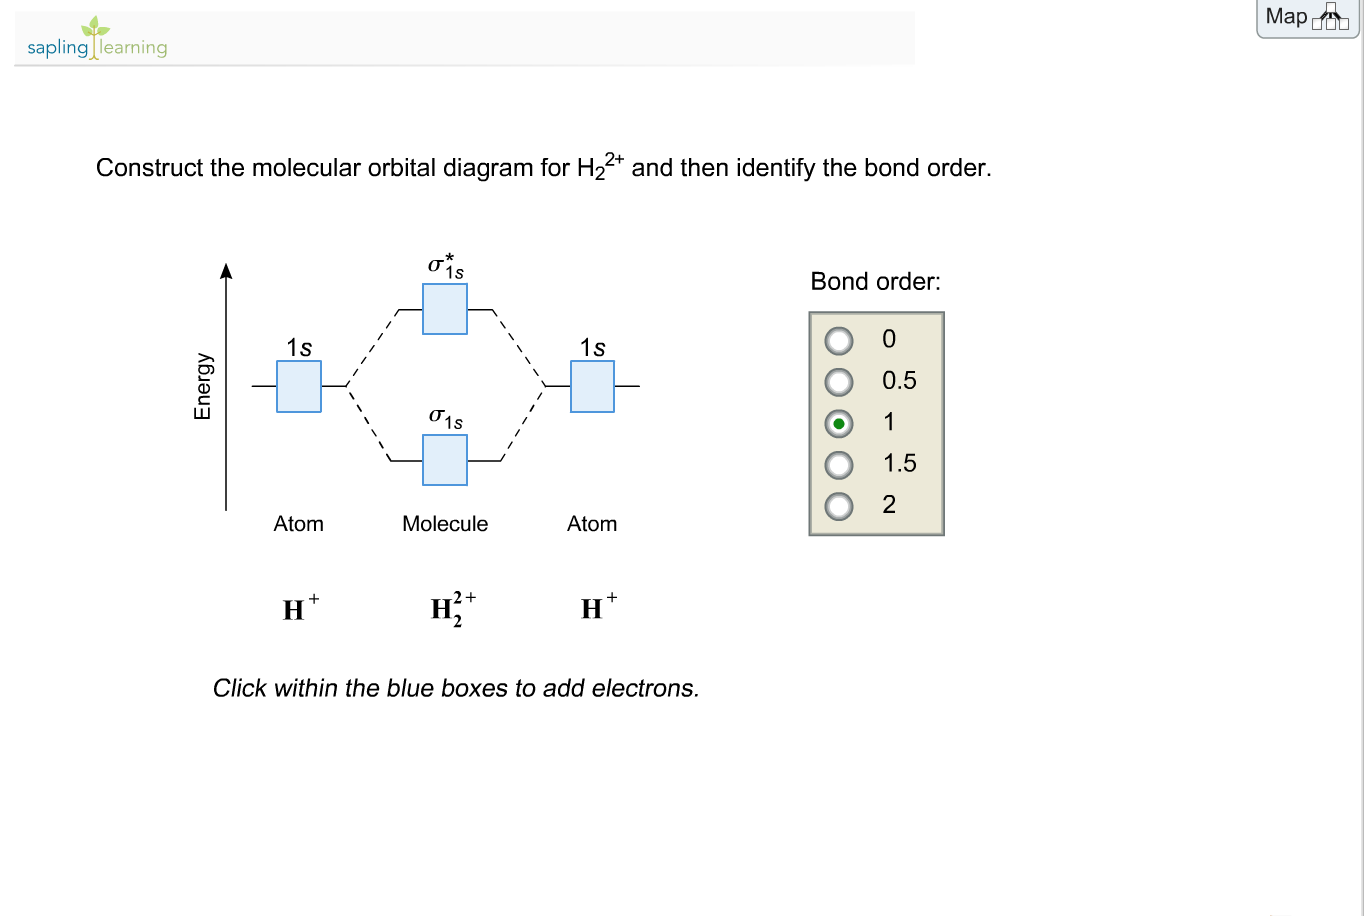 Construct the molecular orbital diagram for he2 free download chemistry archive september 29 2015 chegg com sapling learning construct the molecular orbital d molecular orbital structure molecular orbital diagram of pooptronica Images